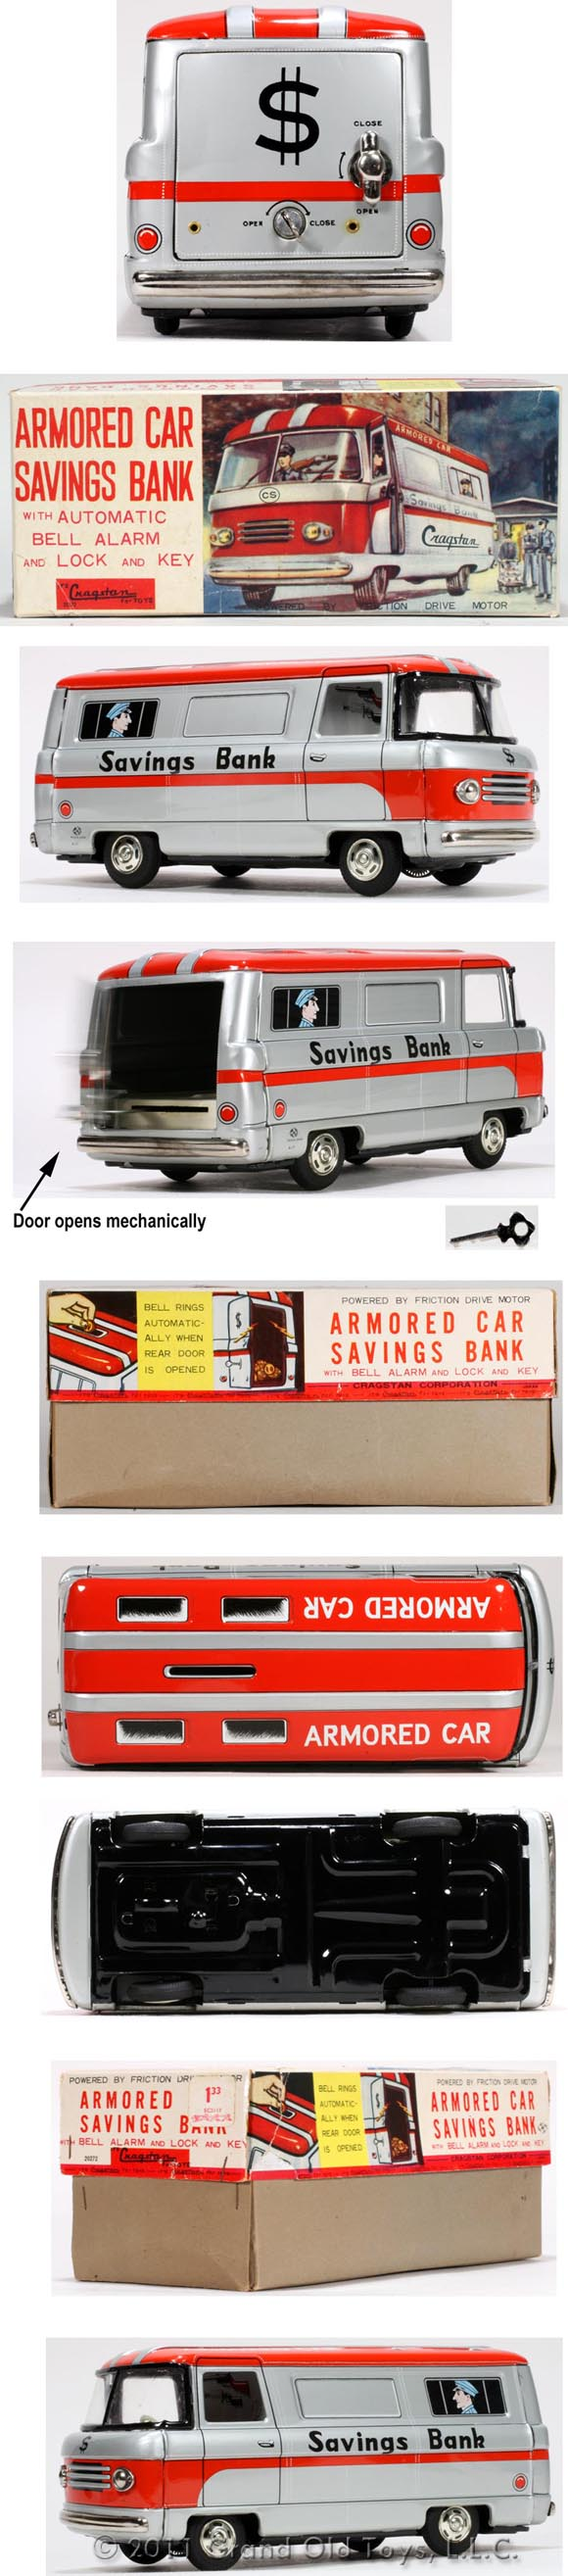 c.1965 Hayashi Armored Car Savings Bank In Original Box